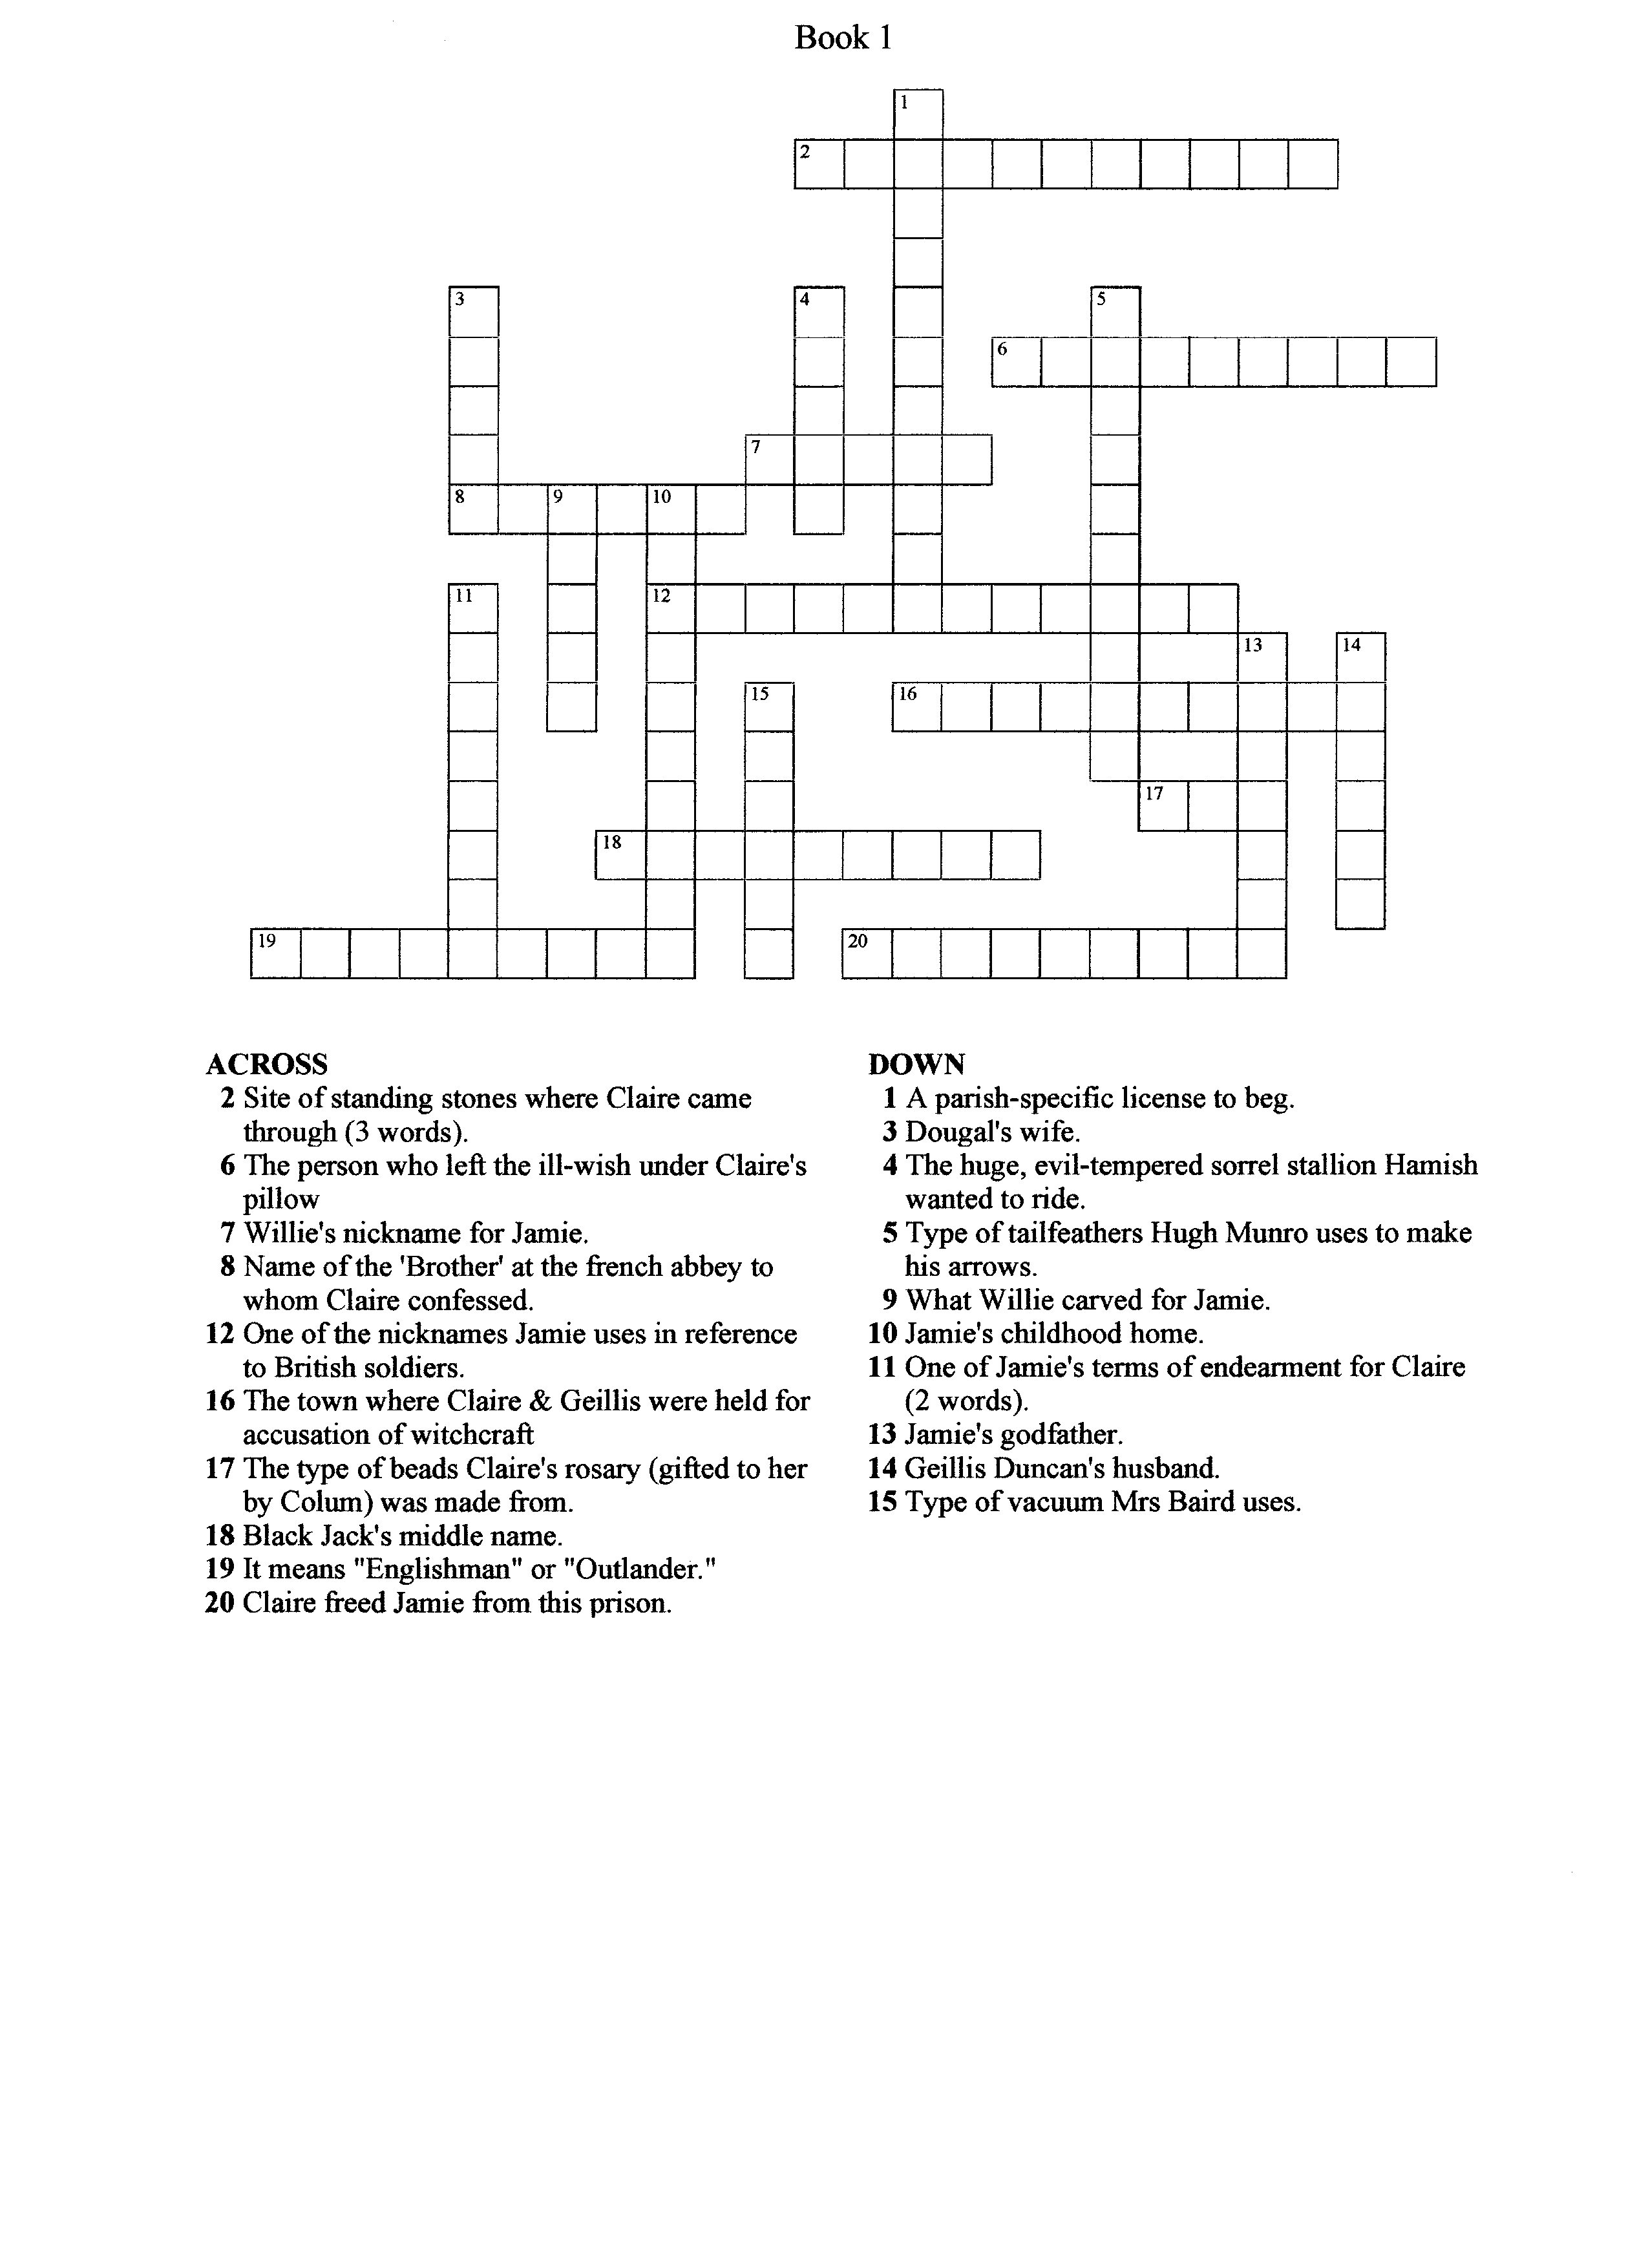 Crossword Puzzle From Book 1 Outlander